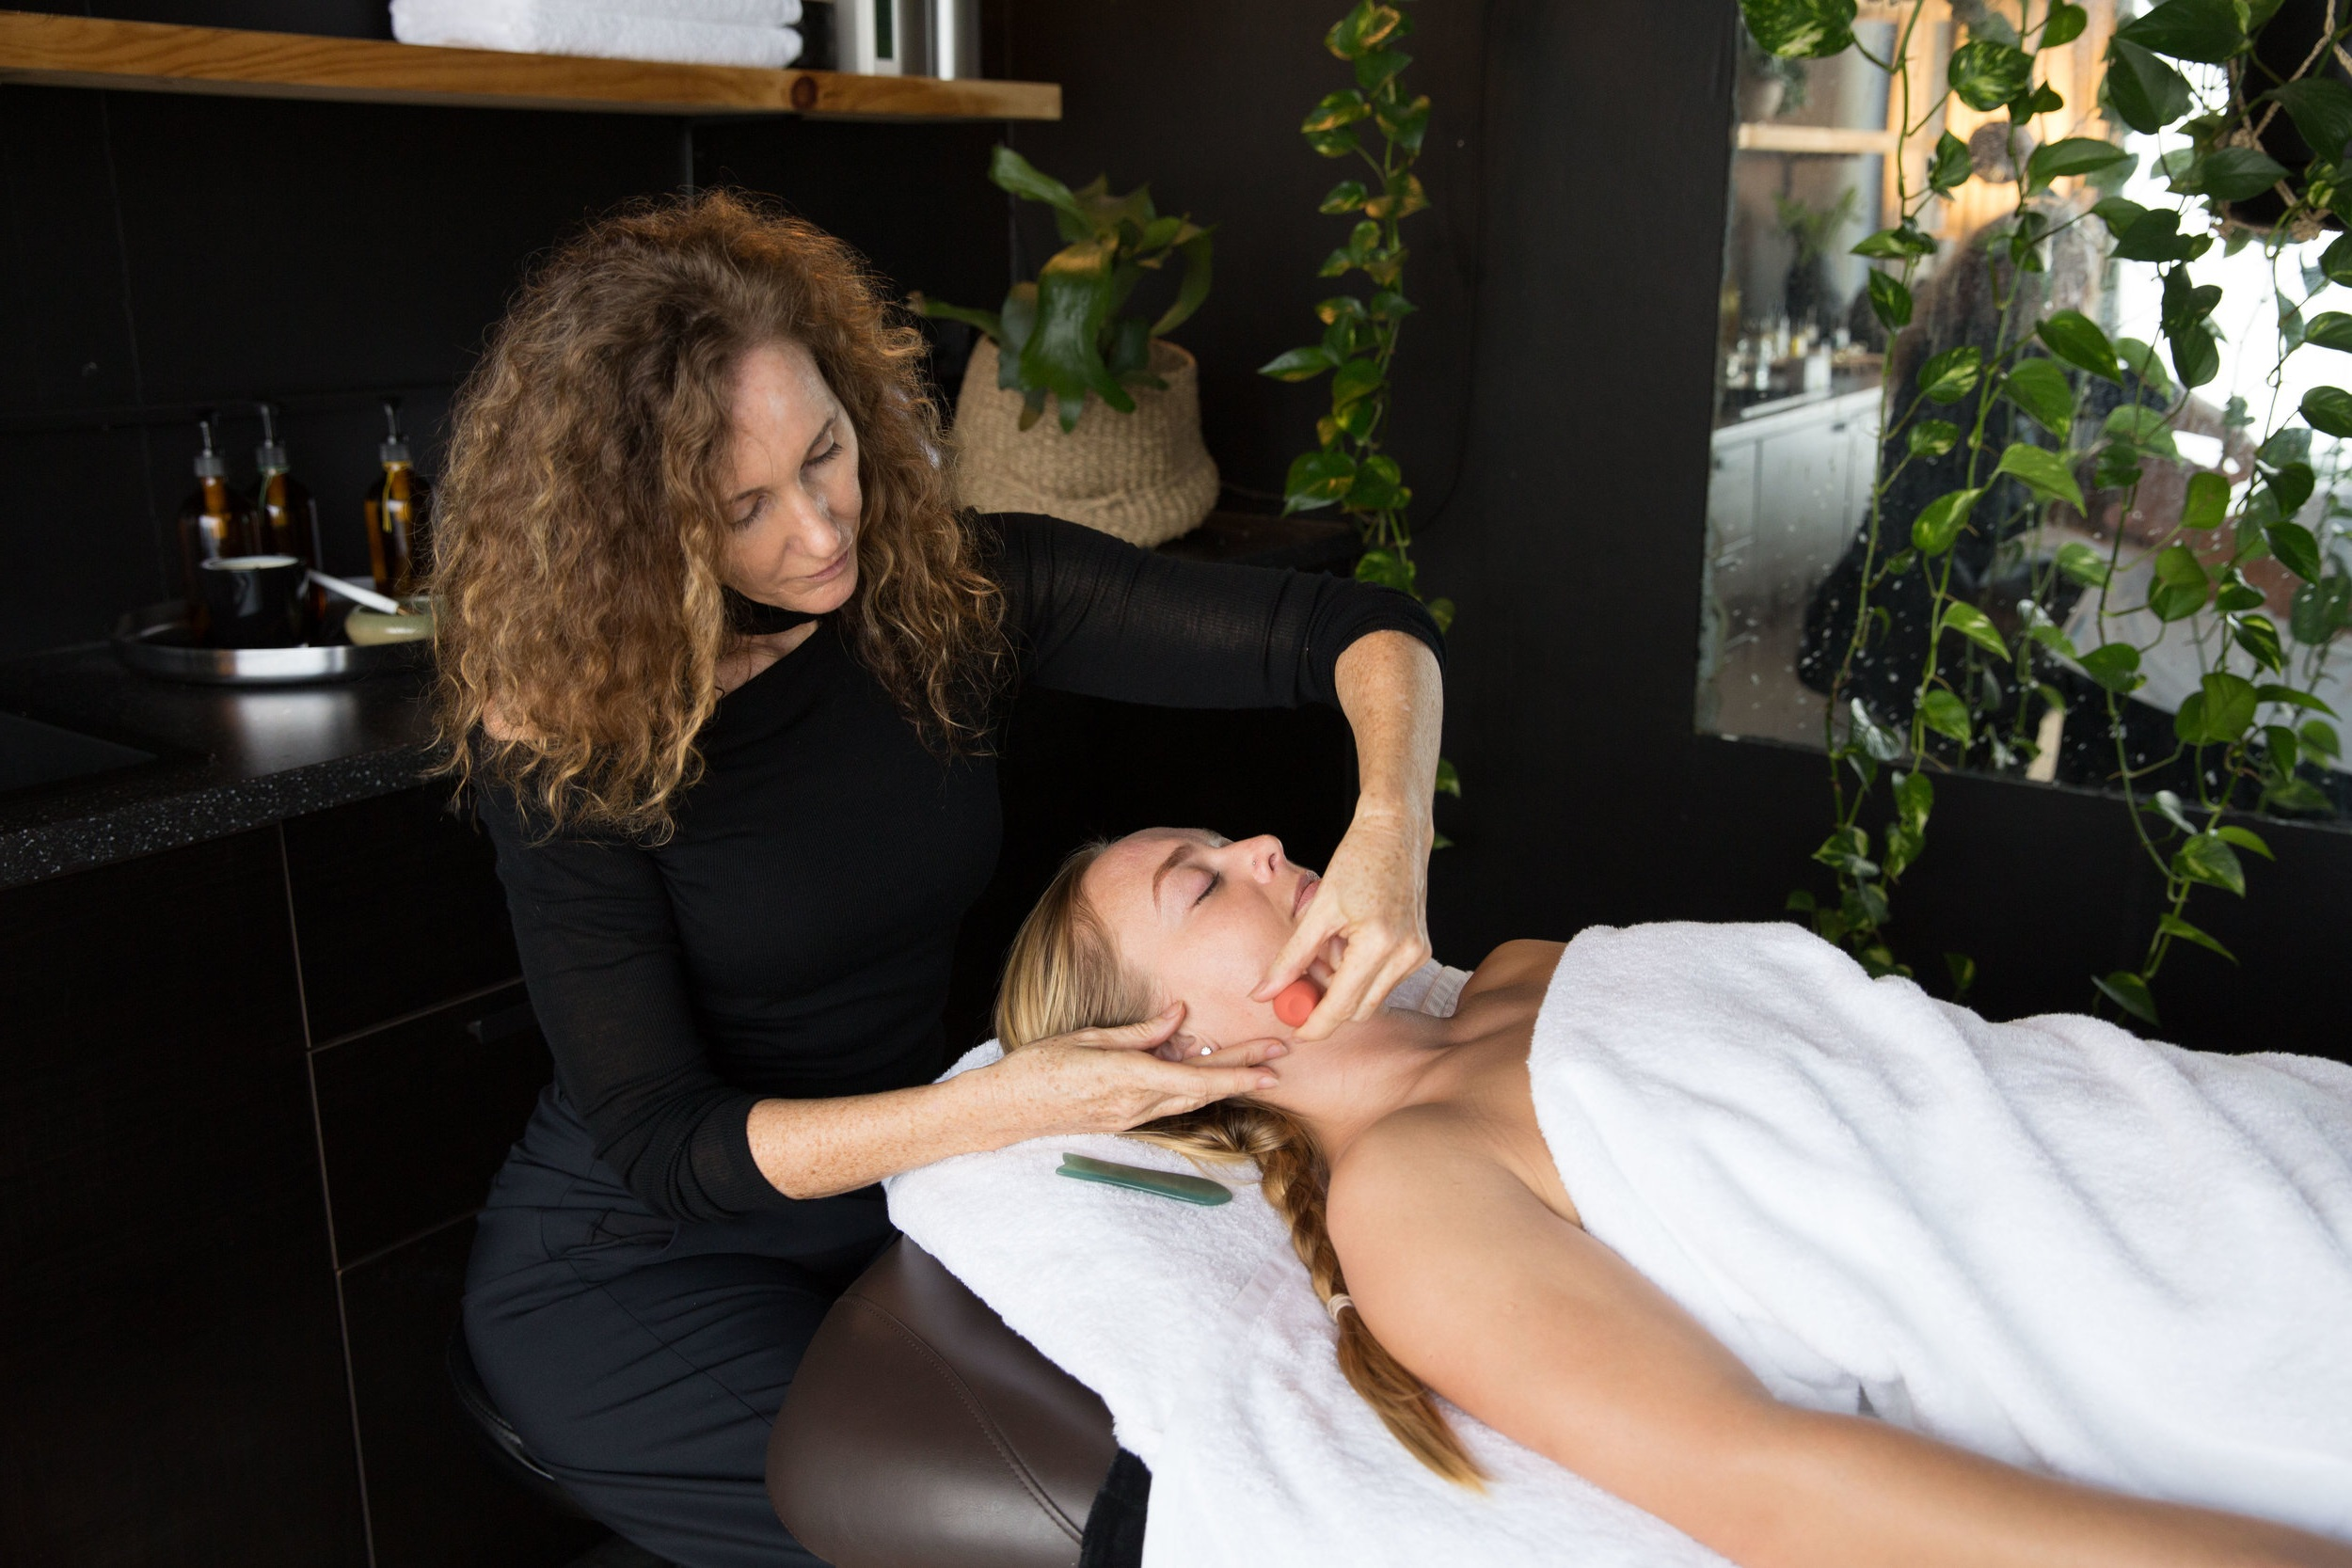 Gua Sha, Facial Cupping and Derma Rolling for increasing collagen and elastin in your skin.